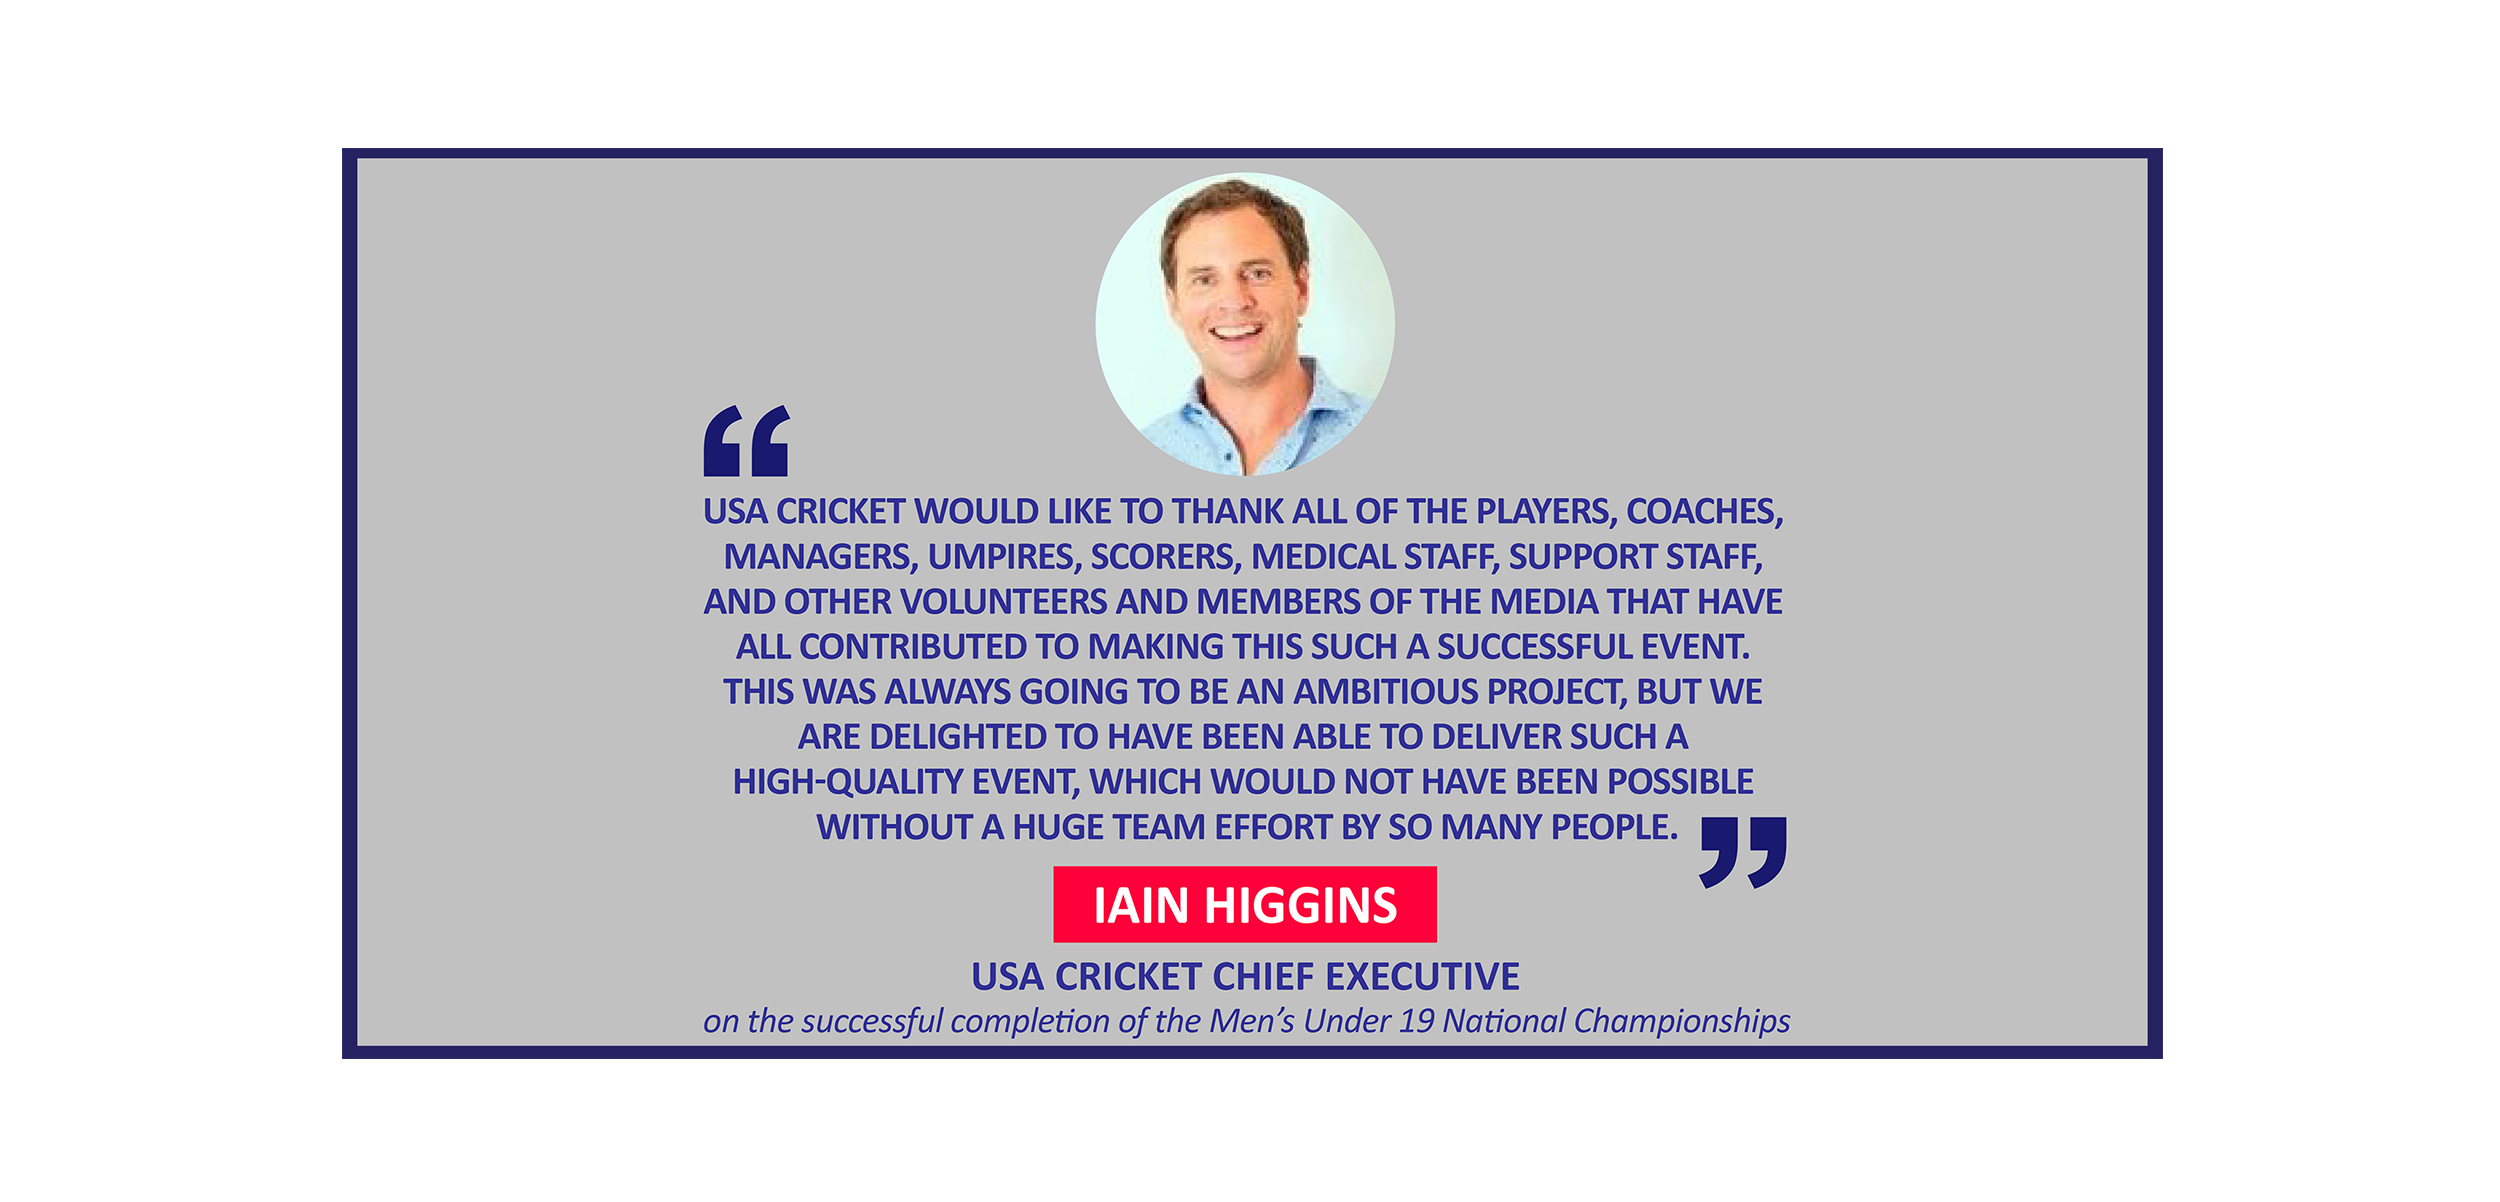 Iain Higgins, USA Cricket Chief Executive on the successful completion of the Men's Under 19 National Championships